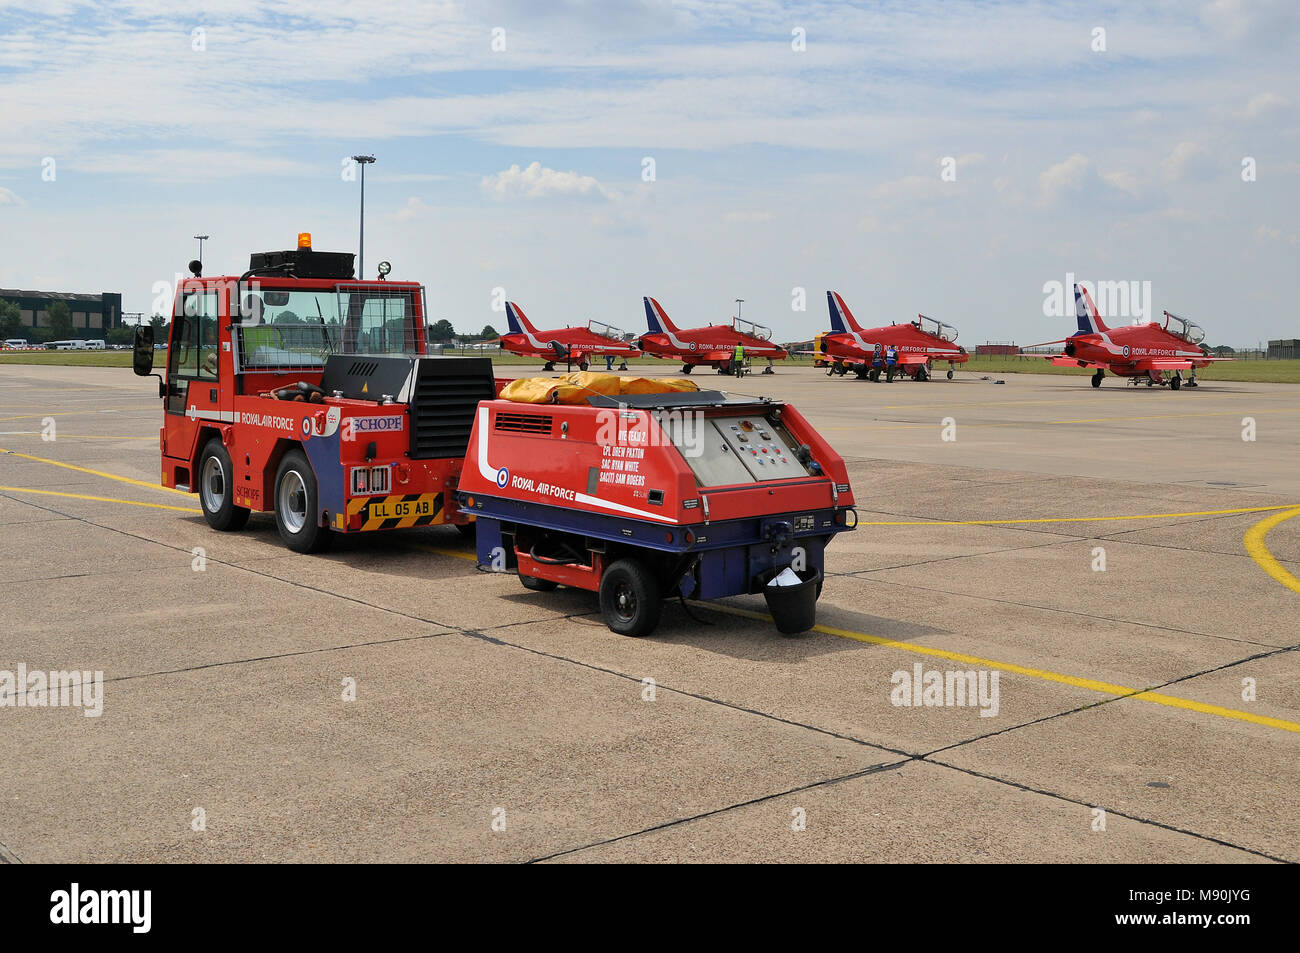 Dye Team tug and smoke dye servicing unit of the Royal Air Force Red Arrows at RAF Scampton. Engineers. Mechanics. Servicing team. Jet planes - Stock Image